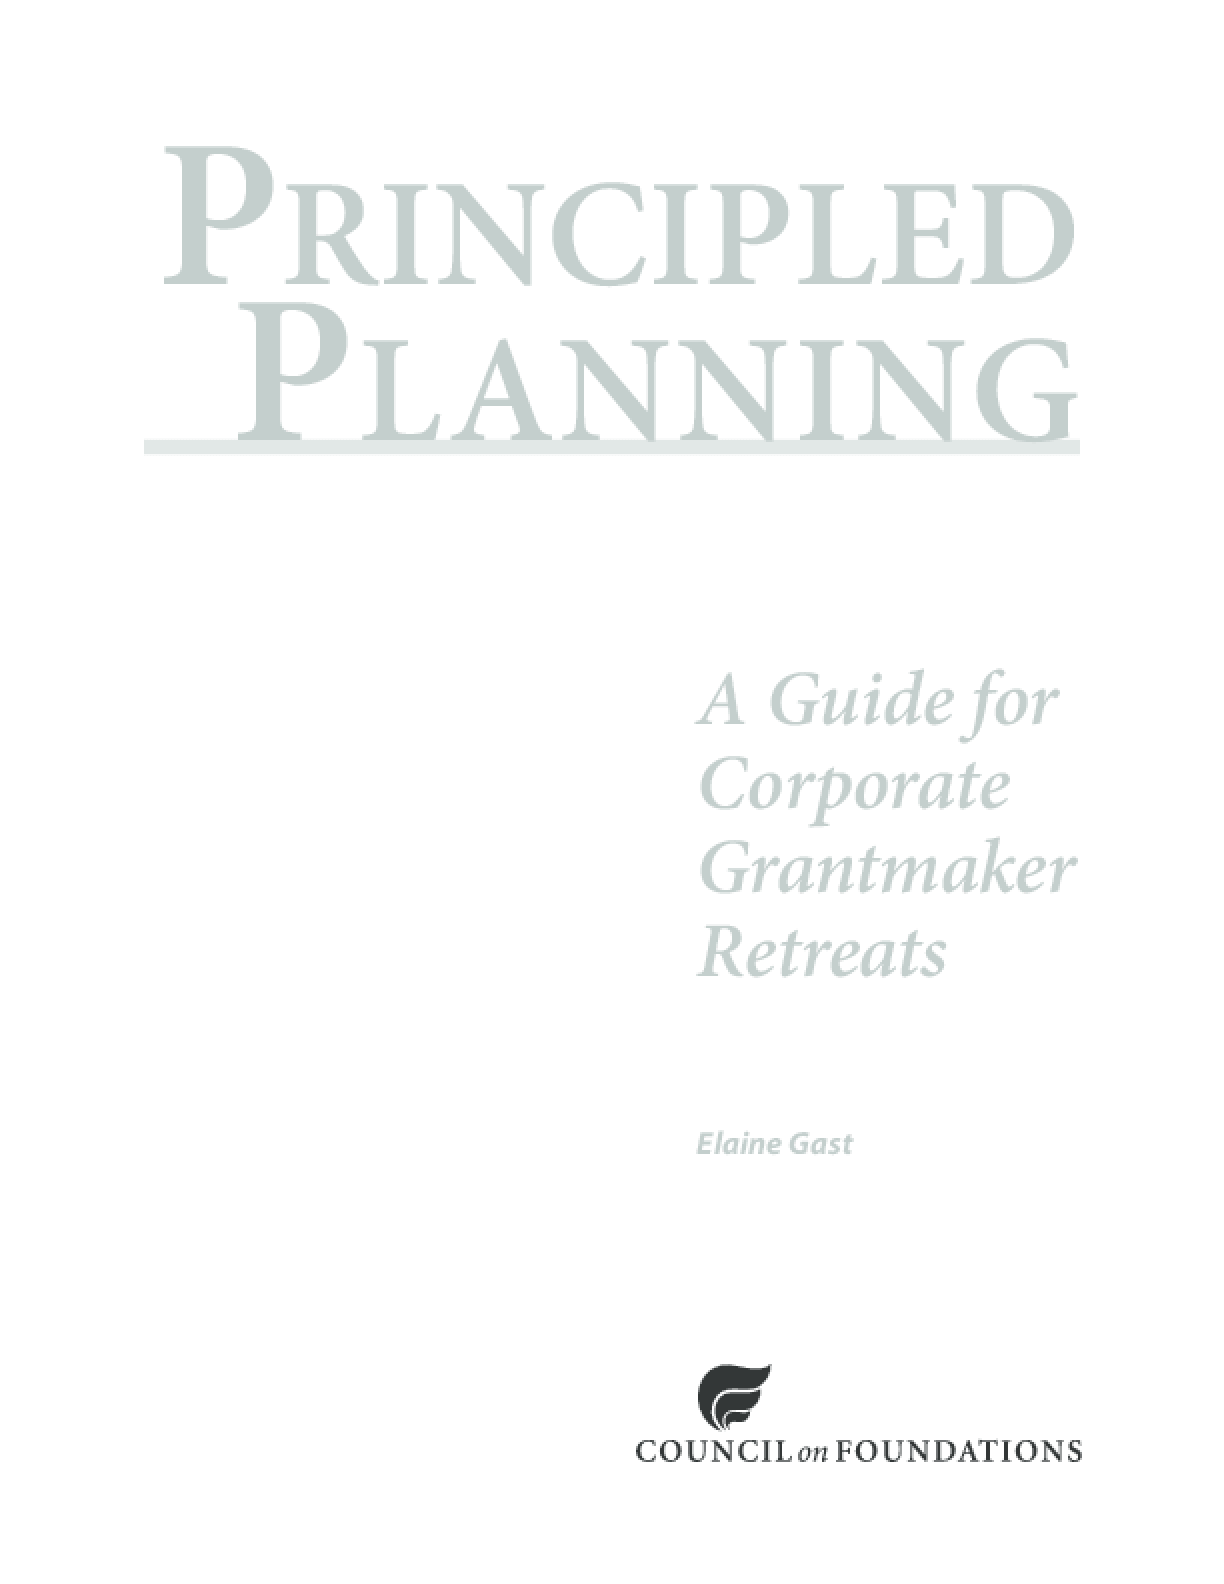 Principled Planning: A Guide for Corporate Grantmaker Retreats